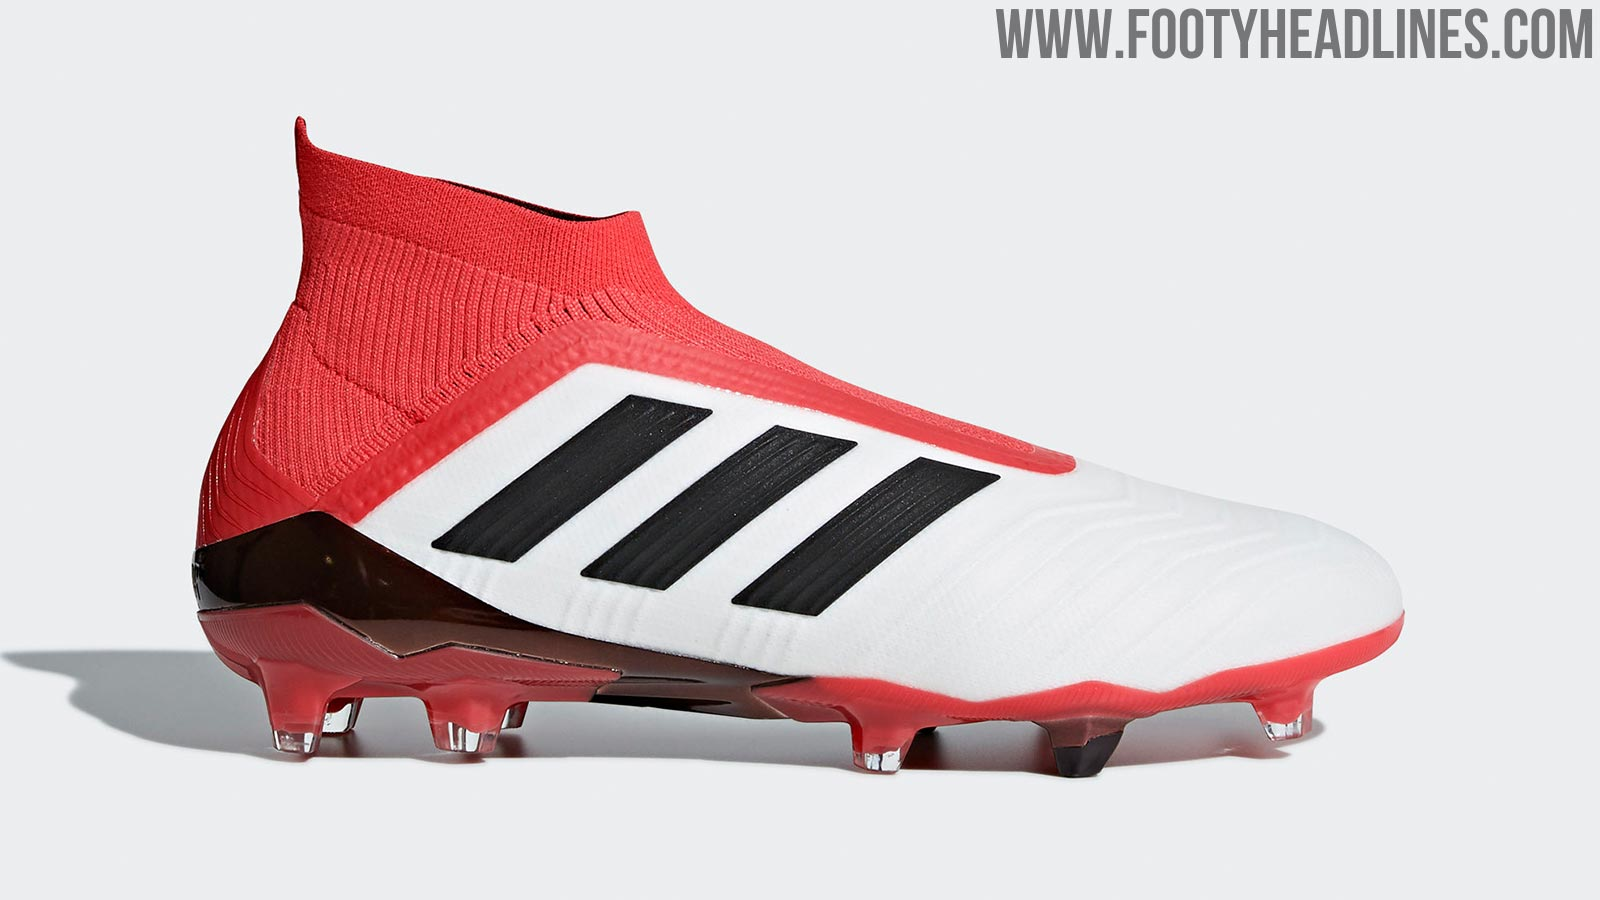 Adidas Kit Shoes